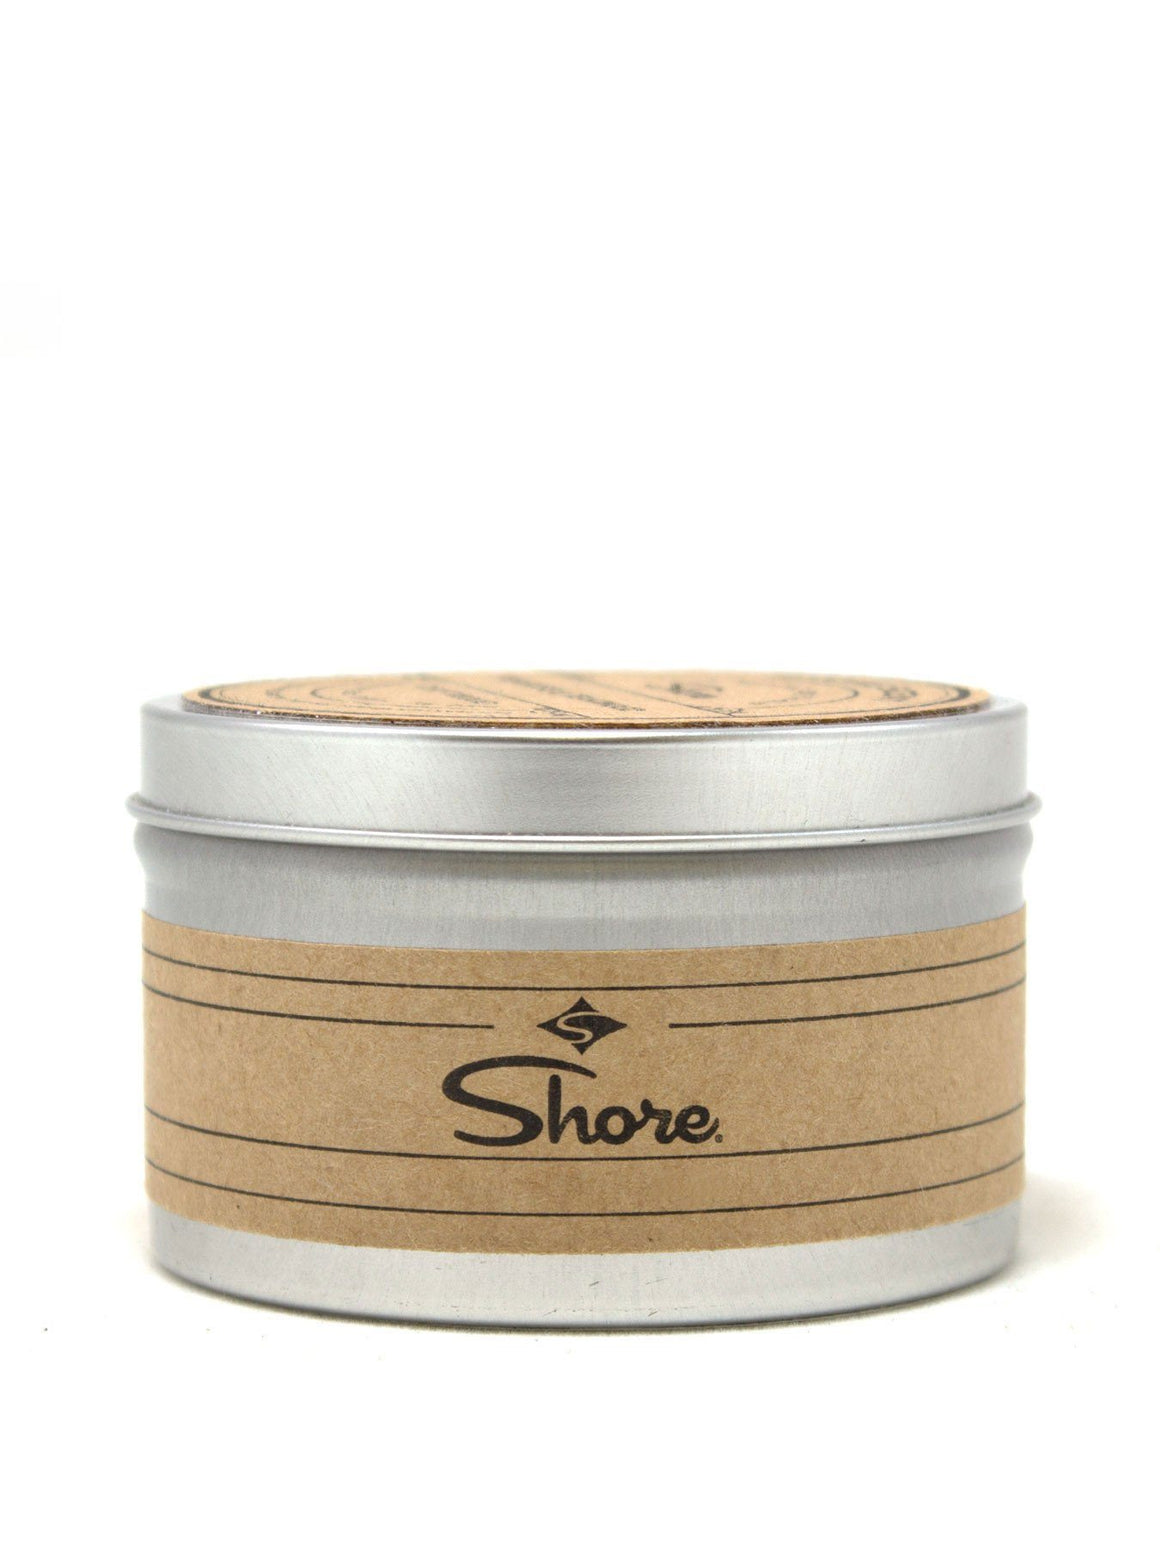 Shore Tin Travel Candles (scent options)